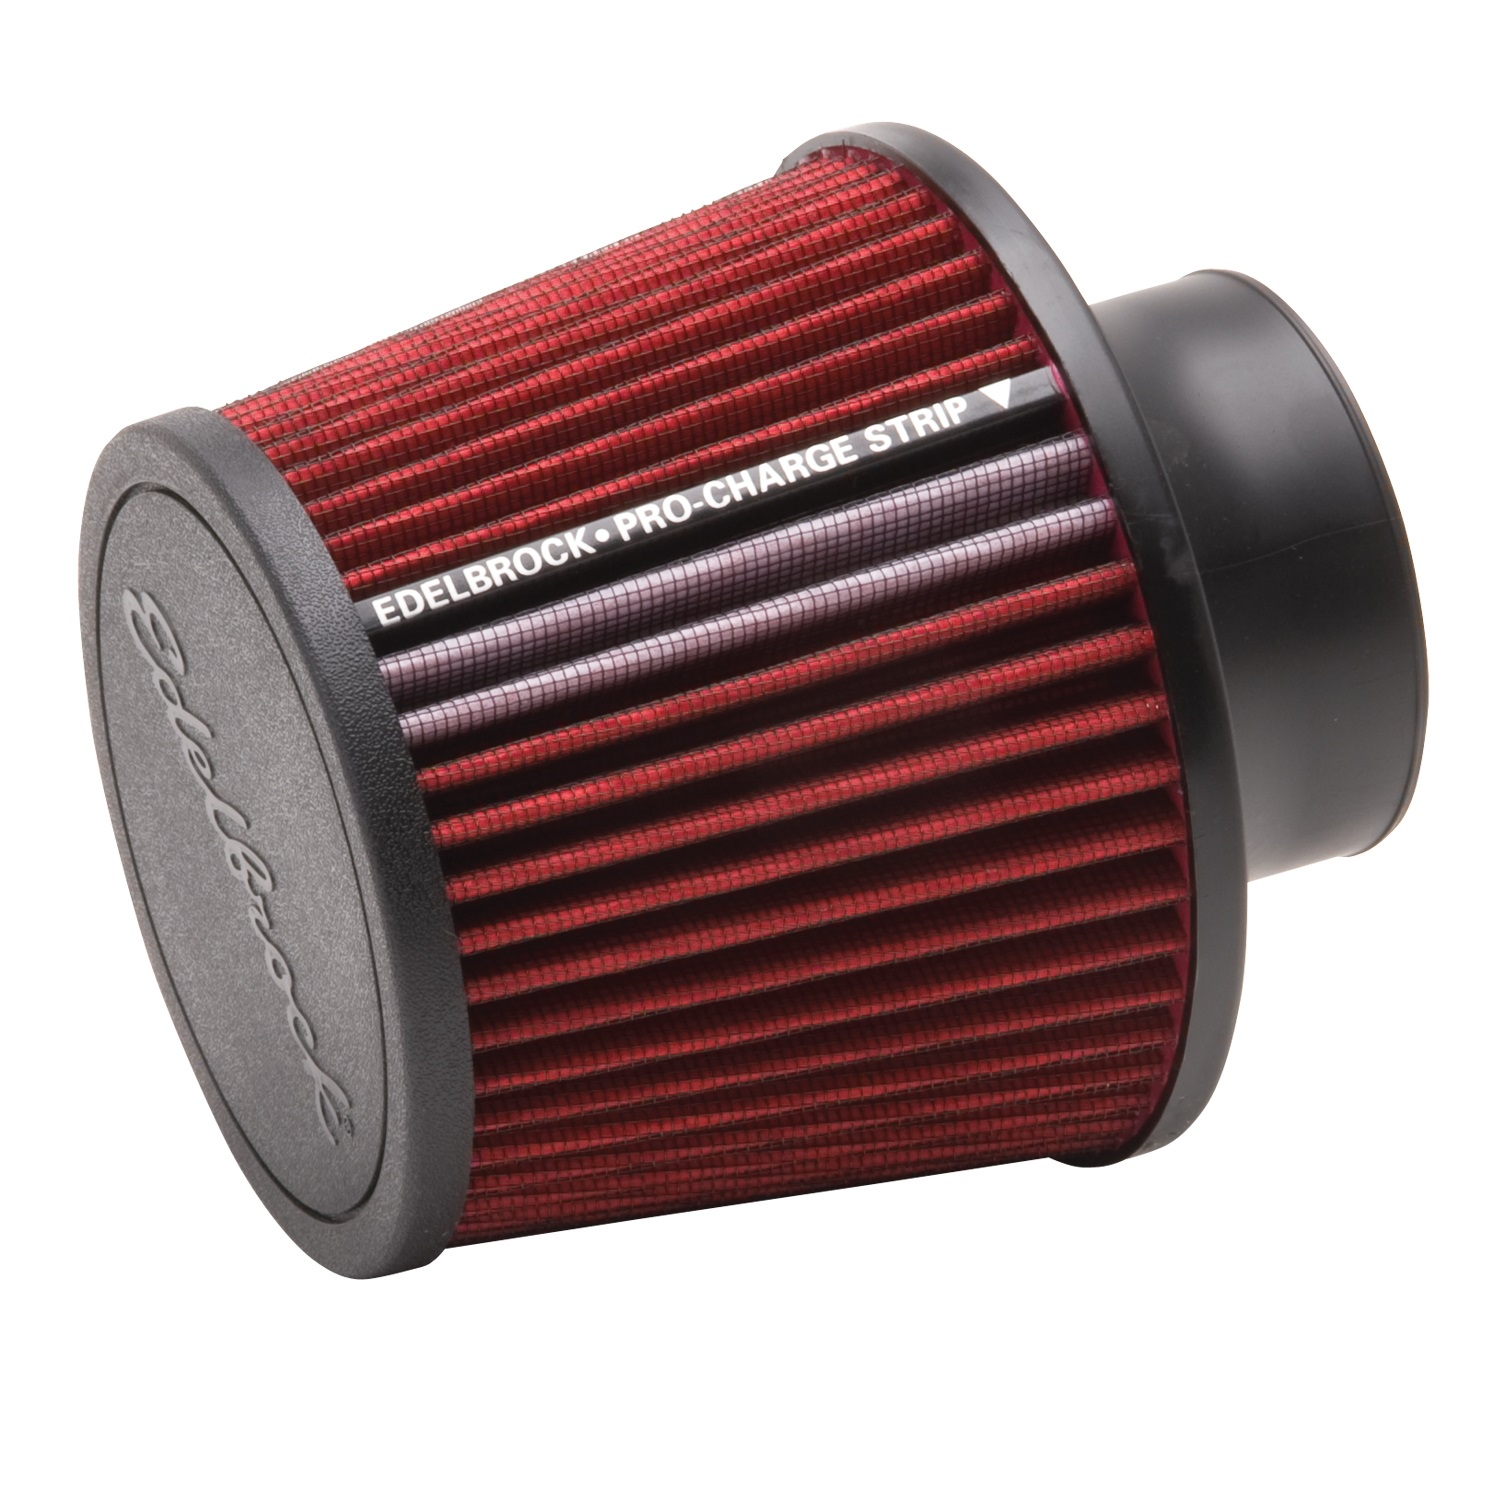 Air Filter. Select A Category Deals In Store Rebates Sales Circular Select a Deal by Category: Filters And PCV. Air Filter. TN - Store Info Change Location CLOSE Deals & Savings CHECK OUT OUR GREAT DEALS ON THESE GREAT PRODUCTS Currently no Online Only Deals are available in this category. Show In Store Deals FIND A REPAIR SHOP.